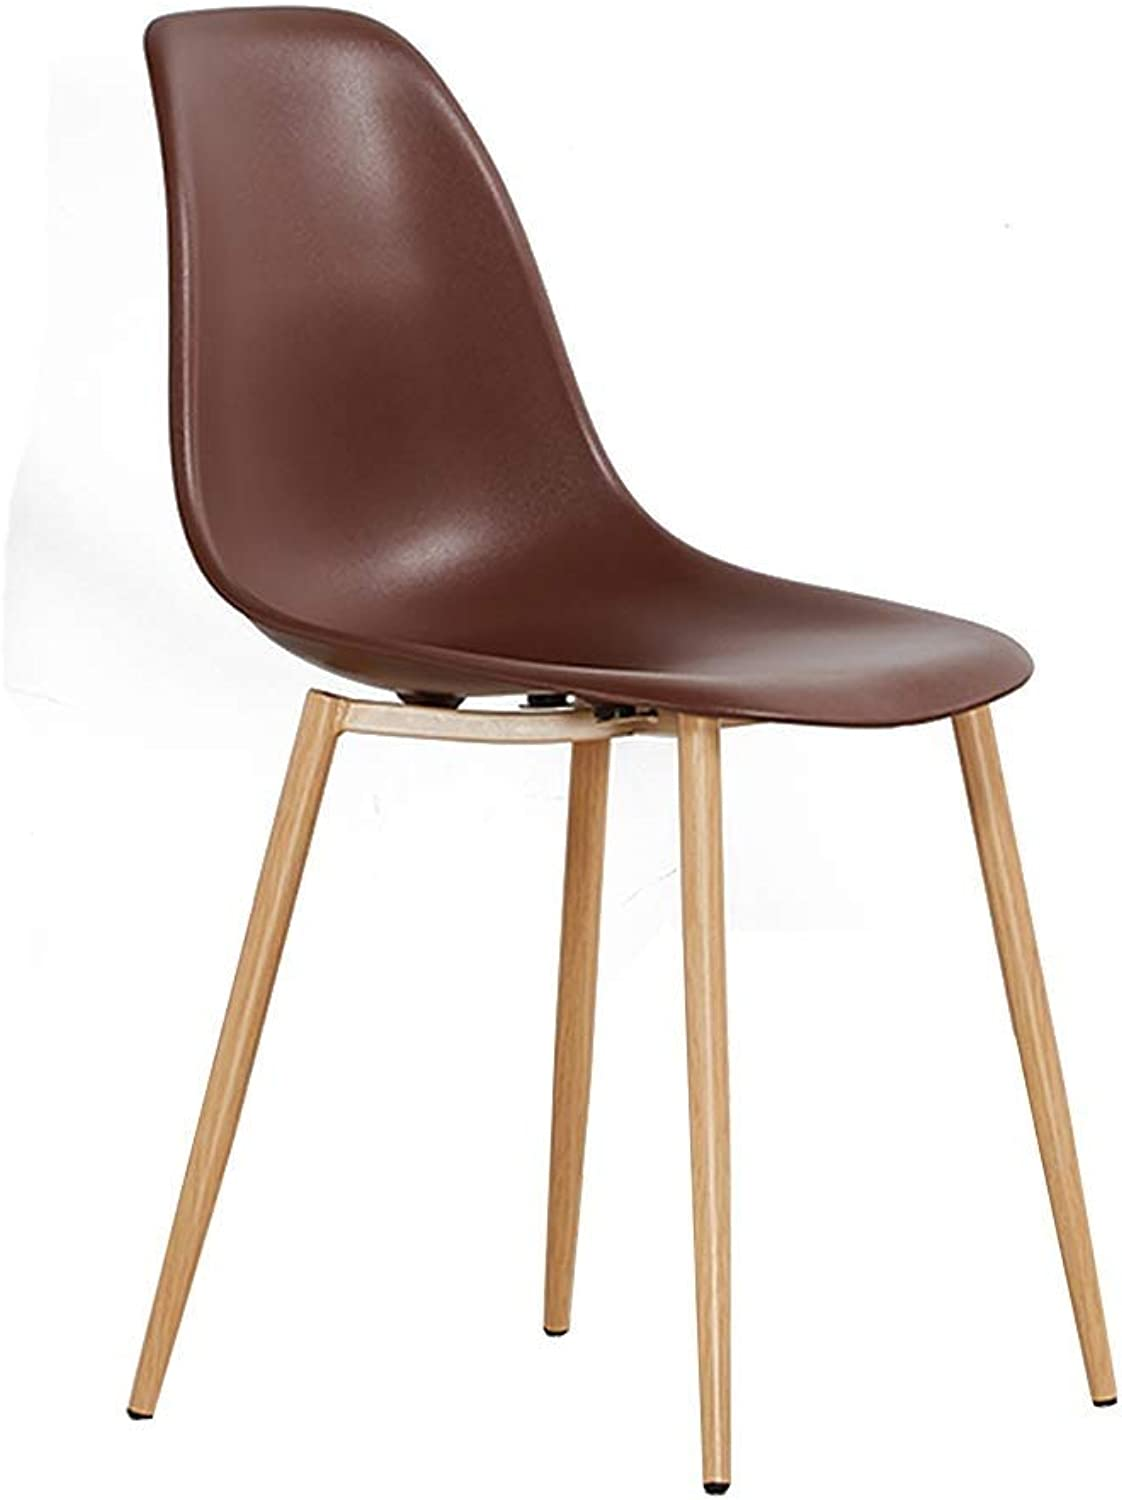 Creative Pp Material Backrest Chair, Sturdy qnd Durable Design Wooden Bracket Ergonomic Design Home Living Room Dining Chair Coffee Shop Tea Shop Leisure Chair Economy (color   Brown)